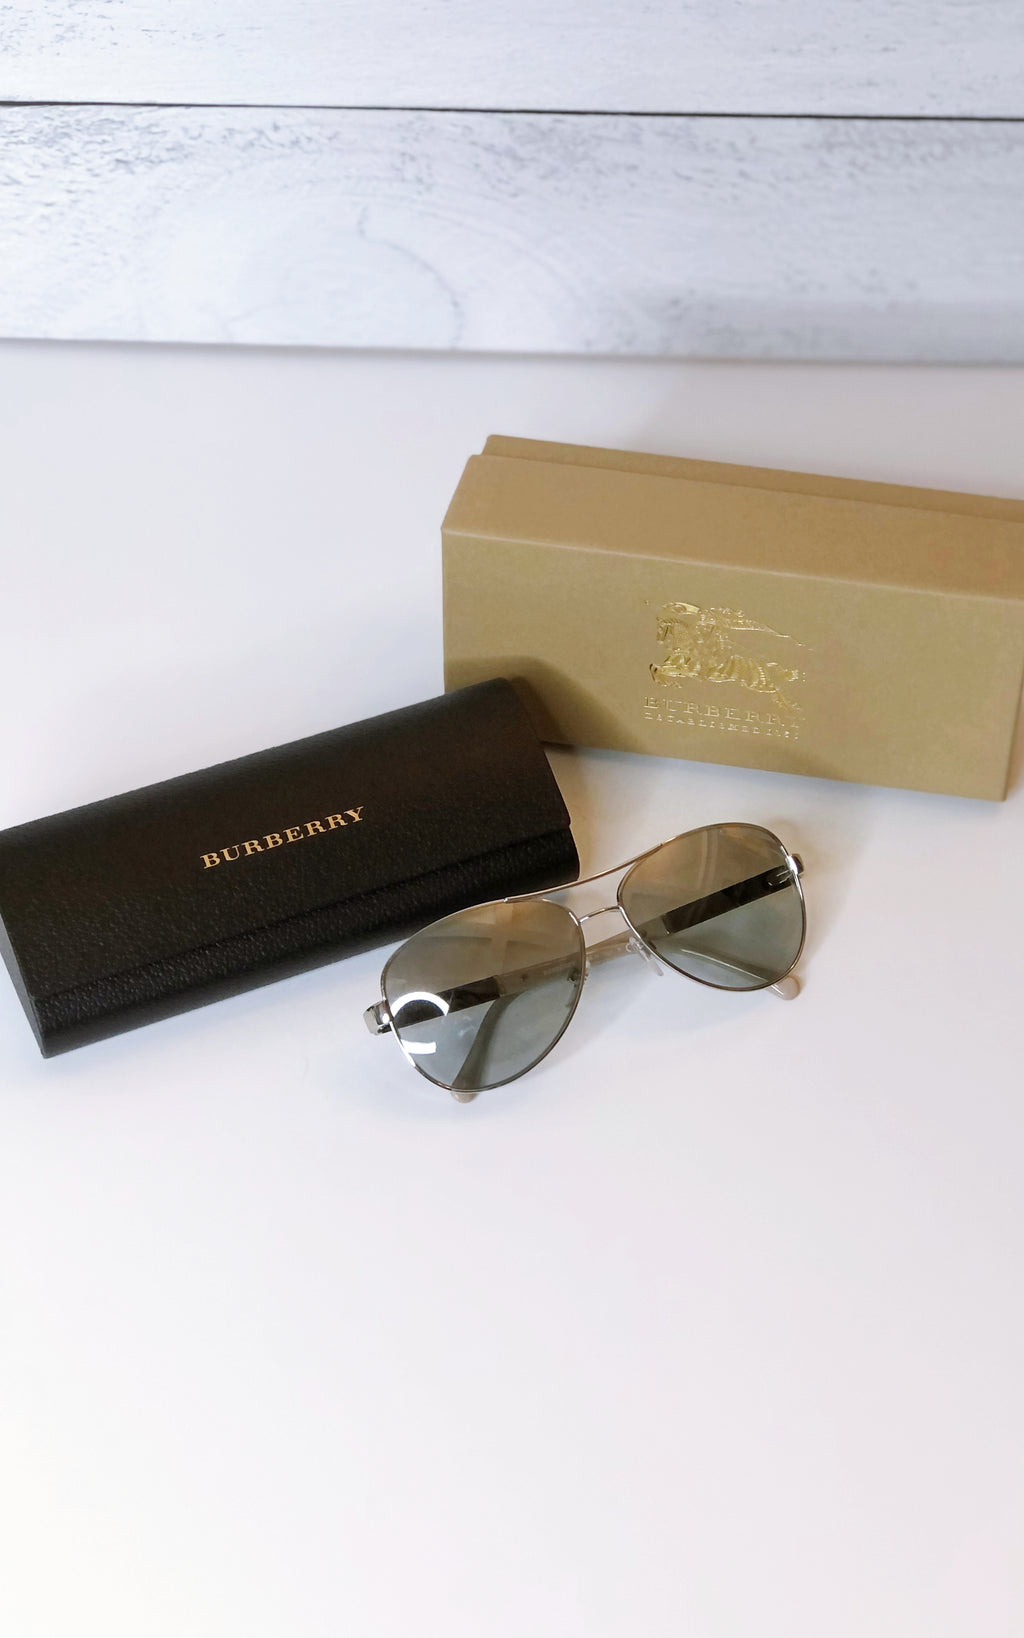 Burberry Unisex Aviator Sunglasses